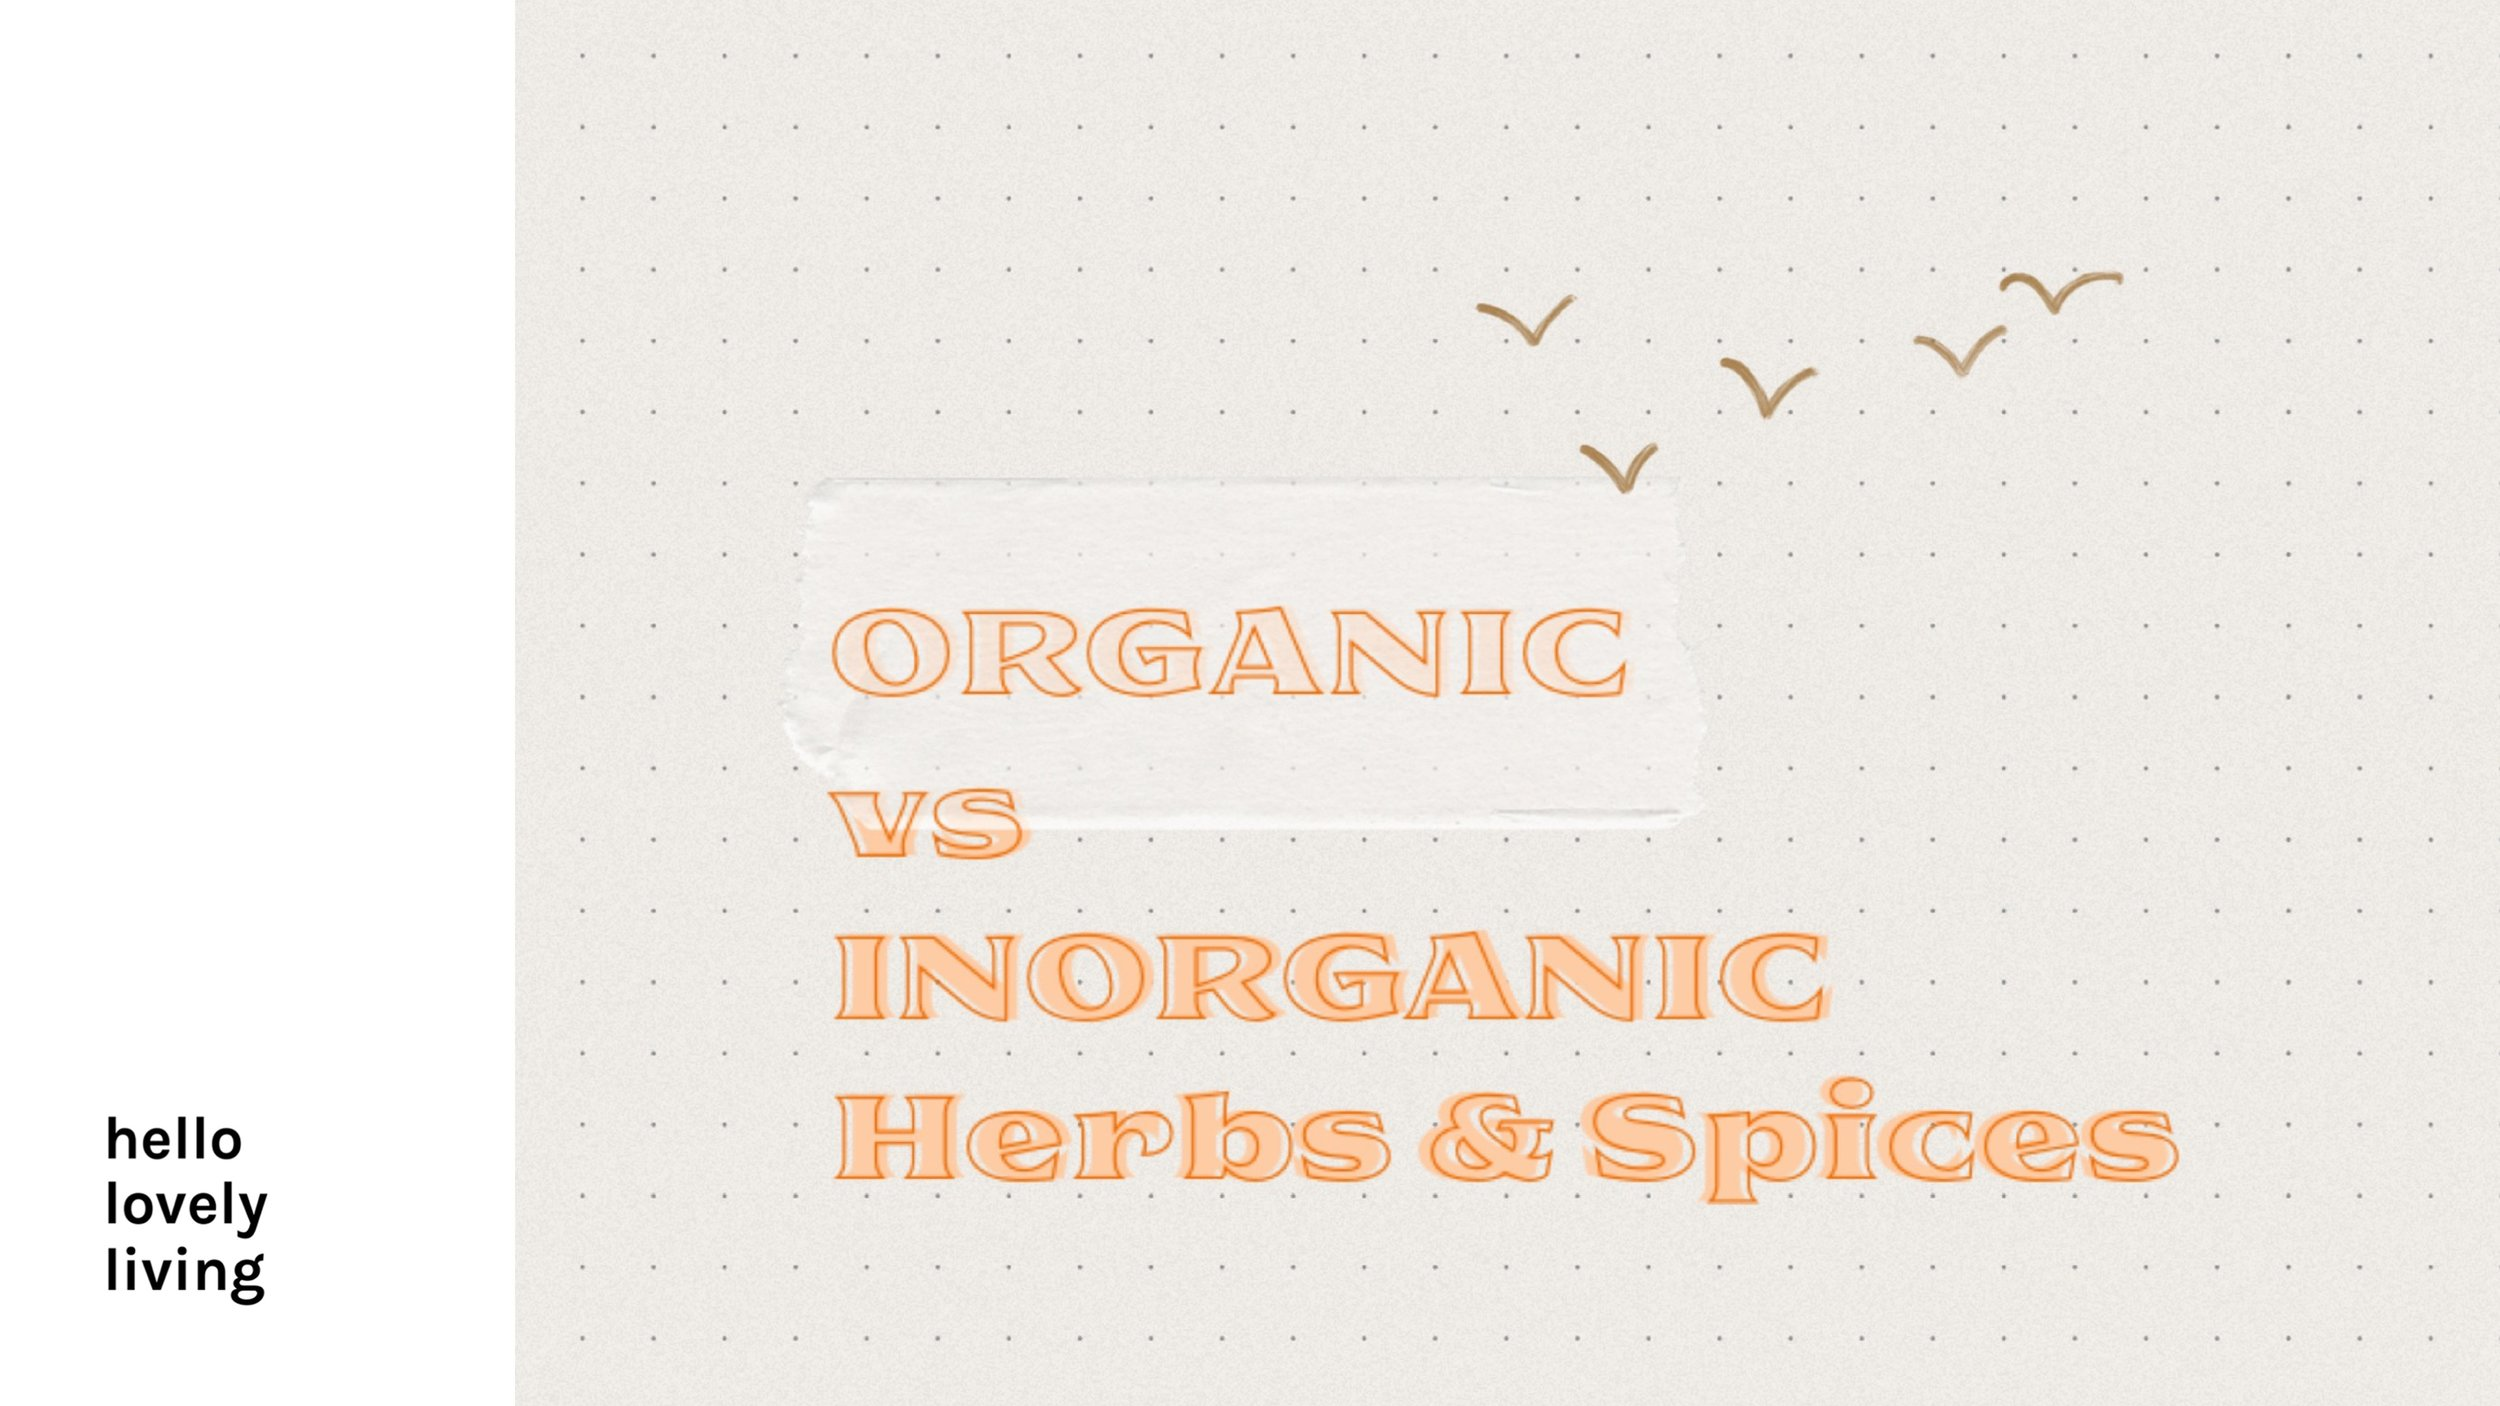 hellolovelyliving.com • Organic Vs Inorganic Herbs & Spices - Does It Really Matter?